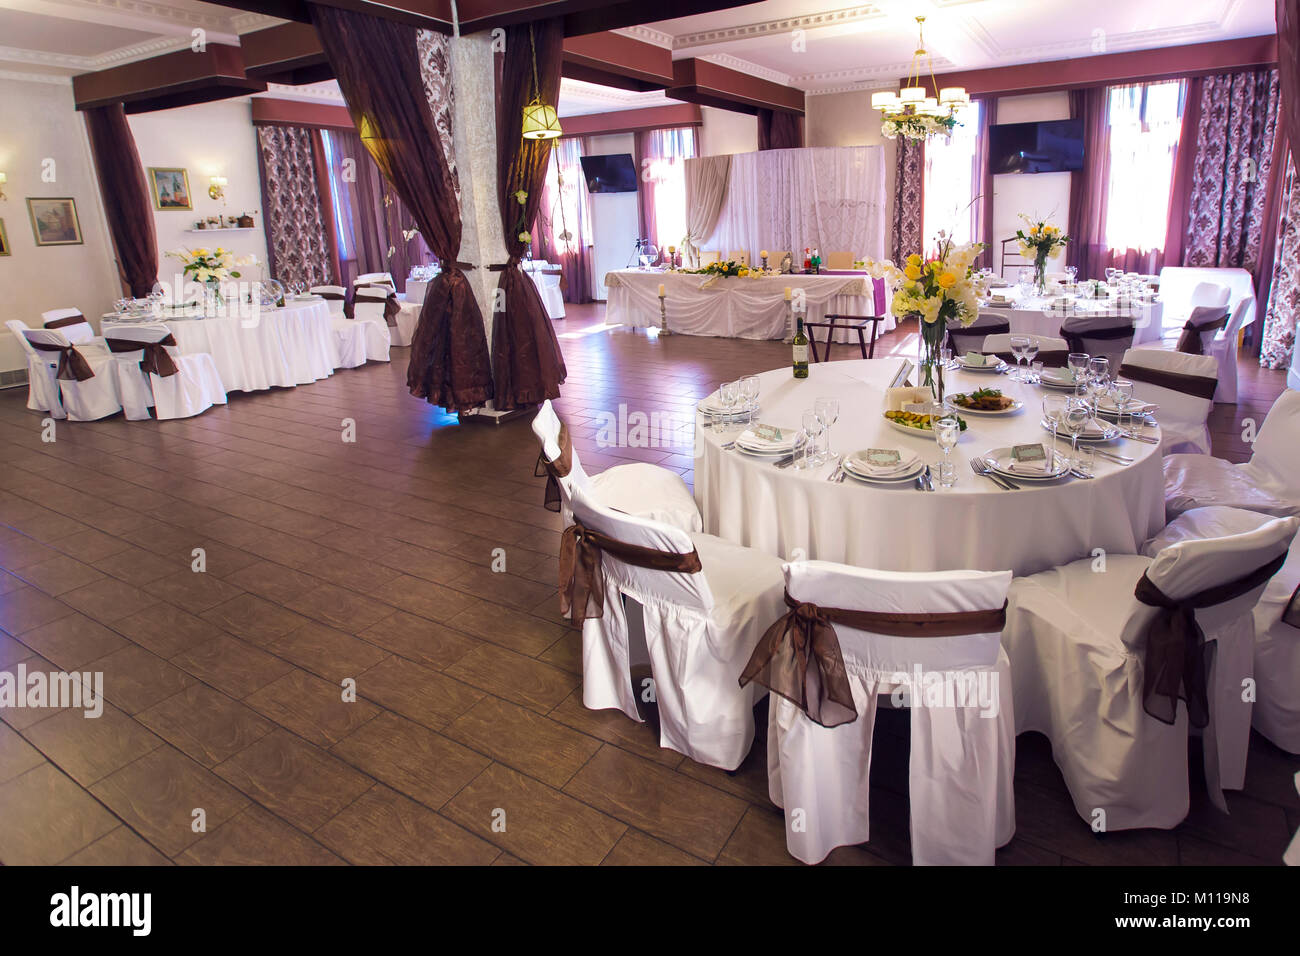 Wedding hall which houses the banquet tables on tables laid out